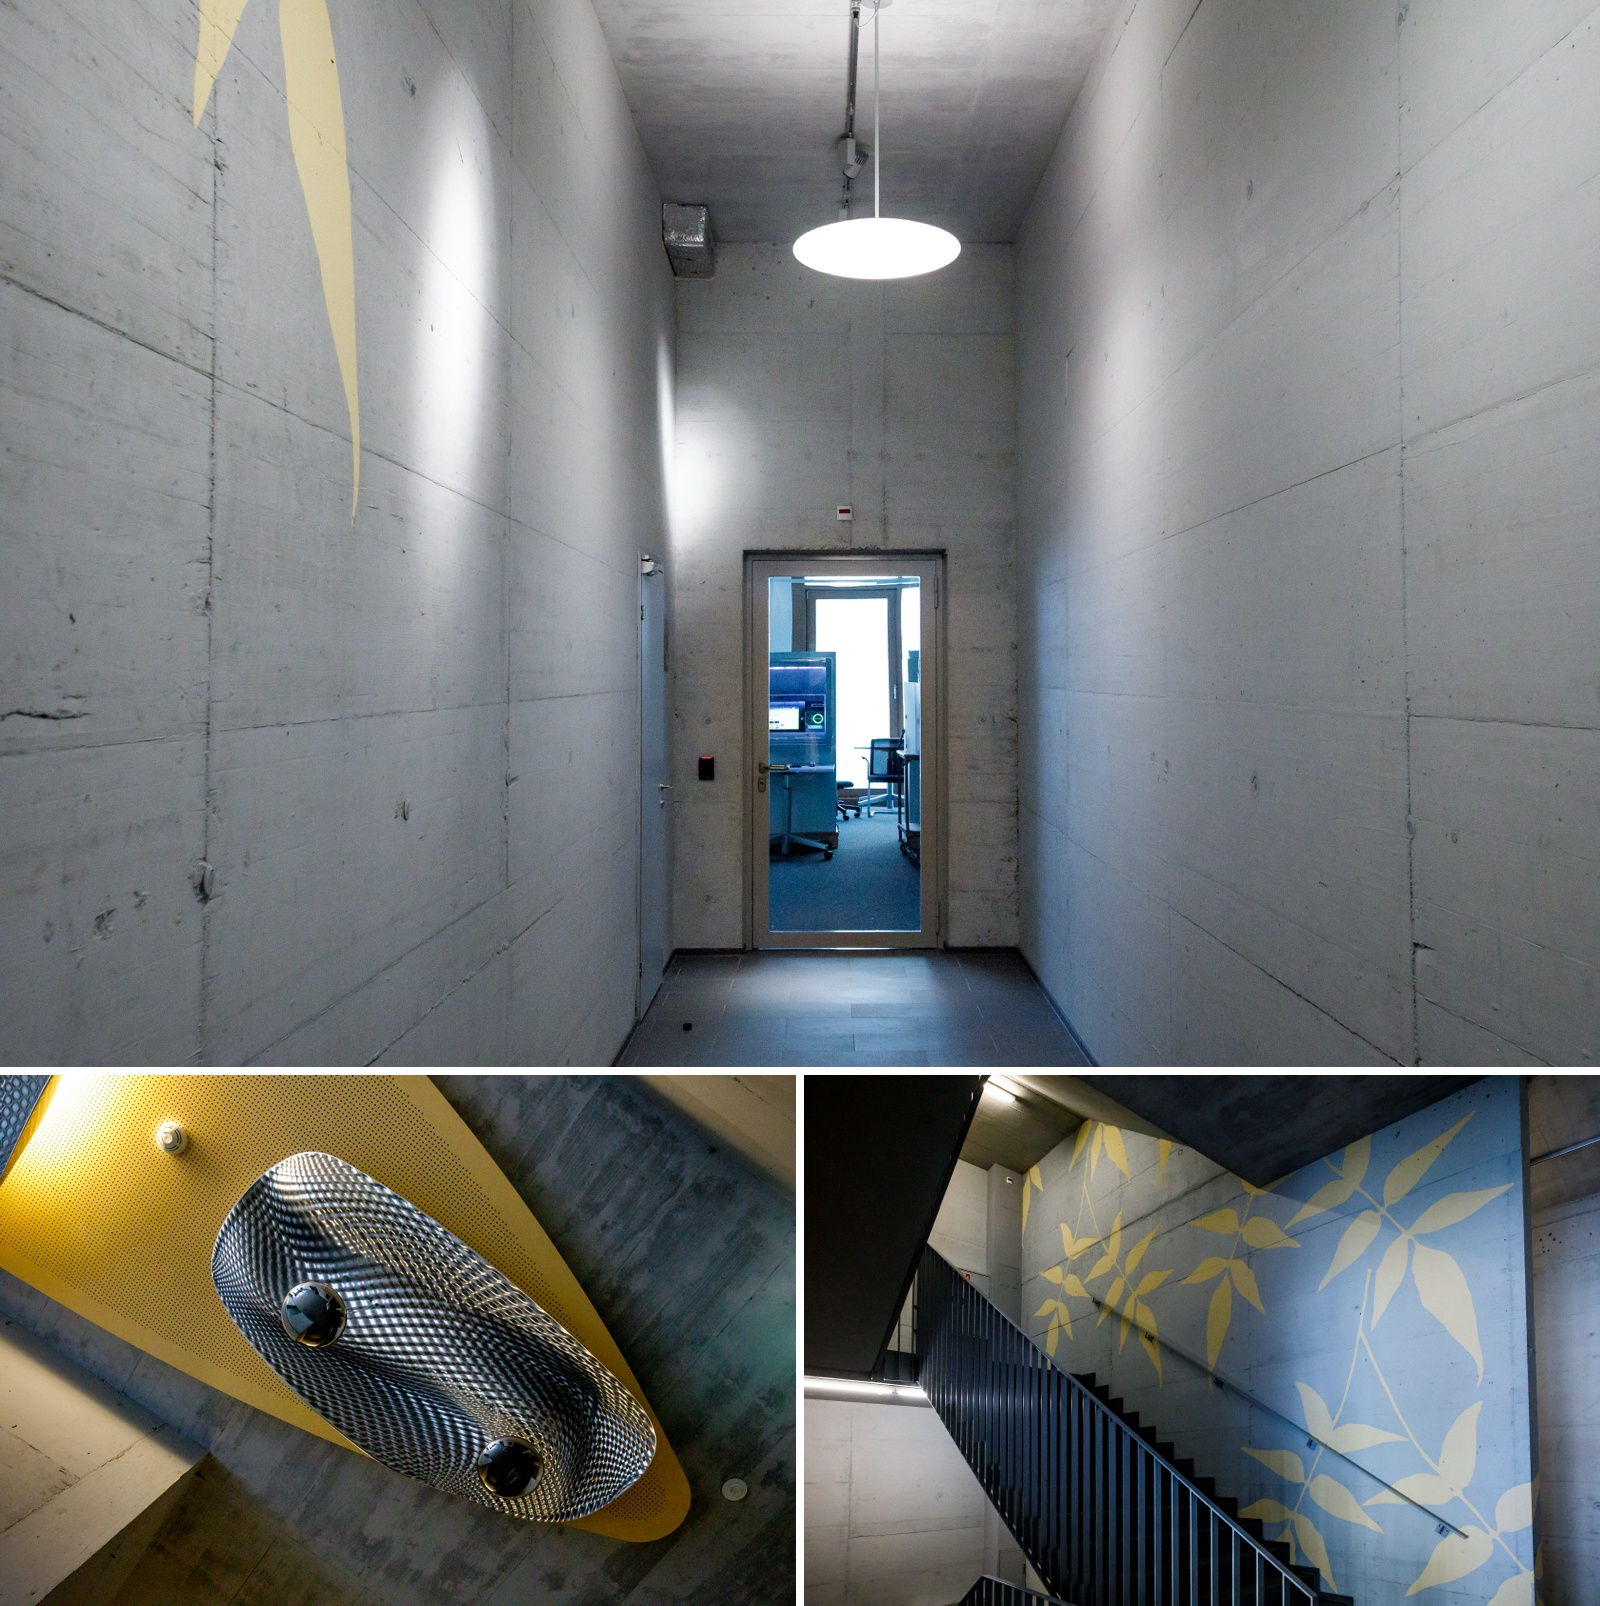 Colour photograph of the lift and stairwell at the new NCR offices in Zurich